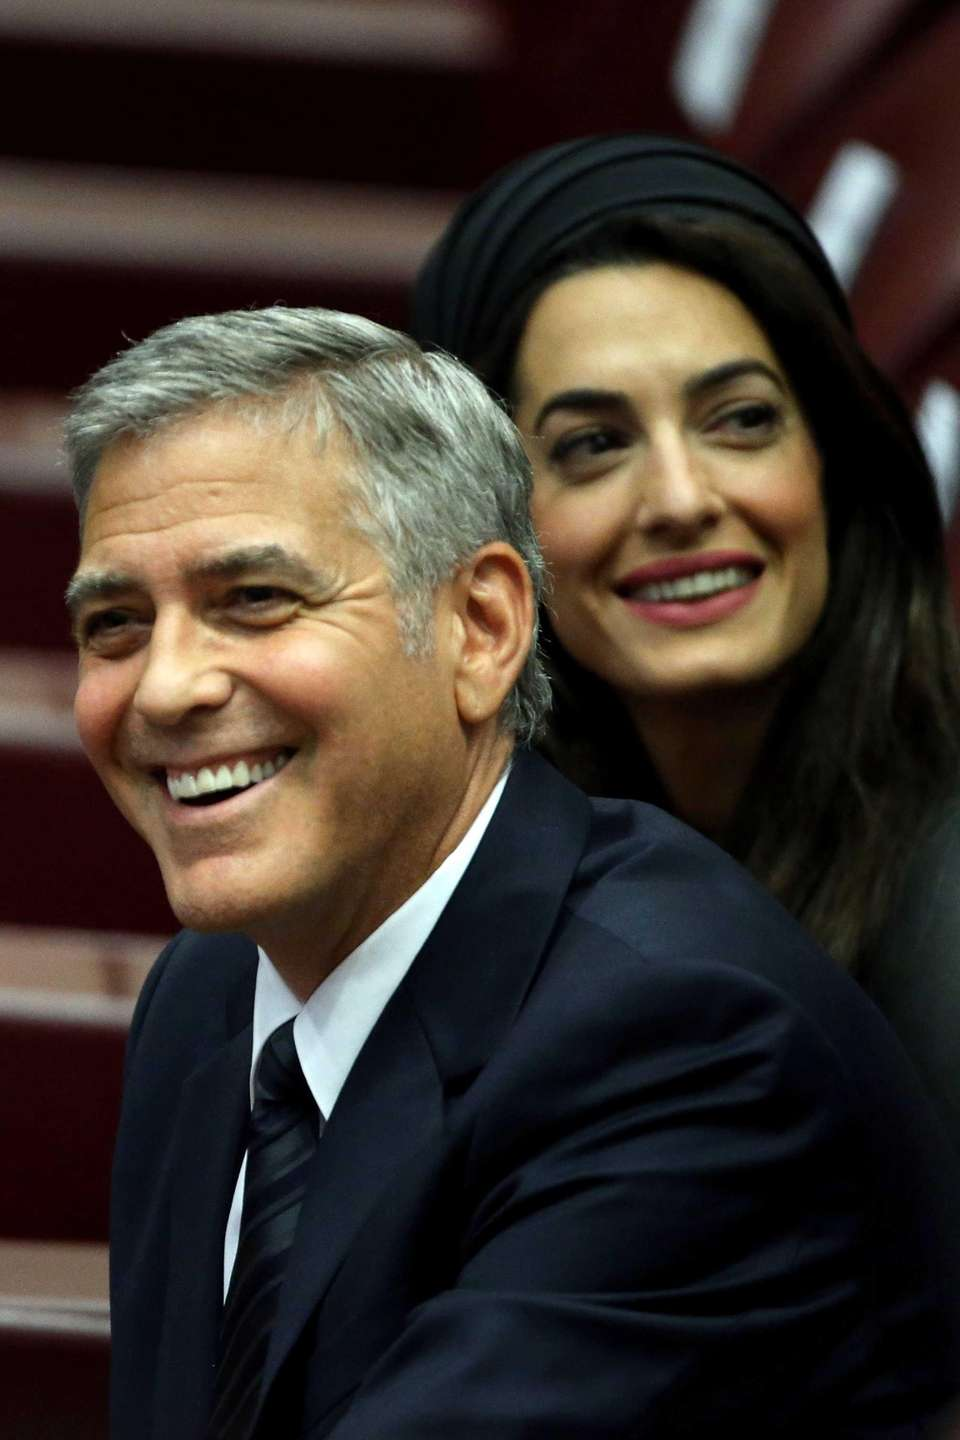 George Clooney and Amal Clooney attend 'Un Muro